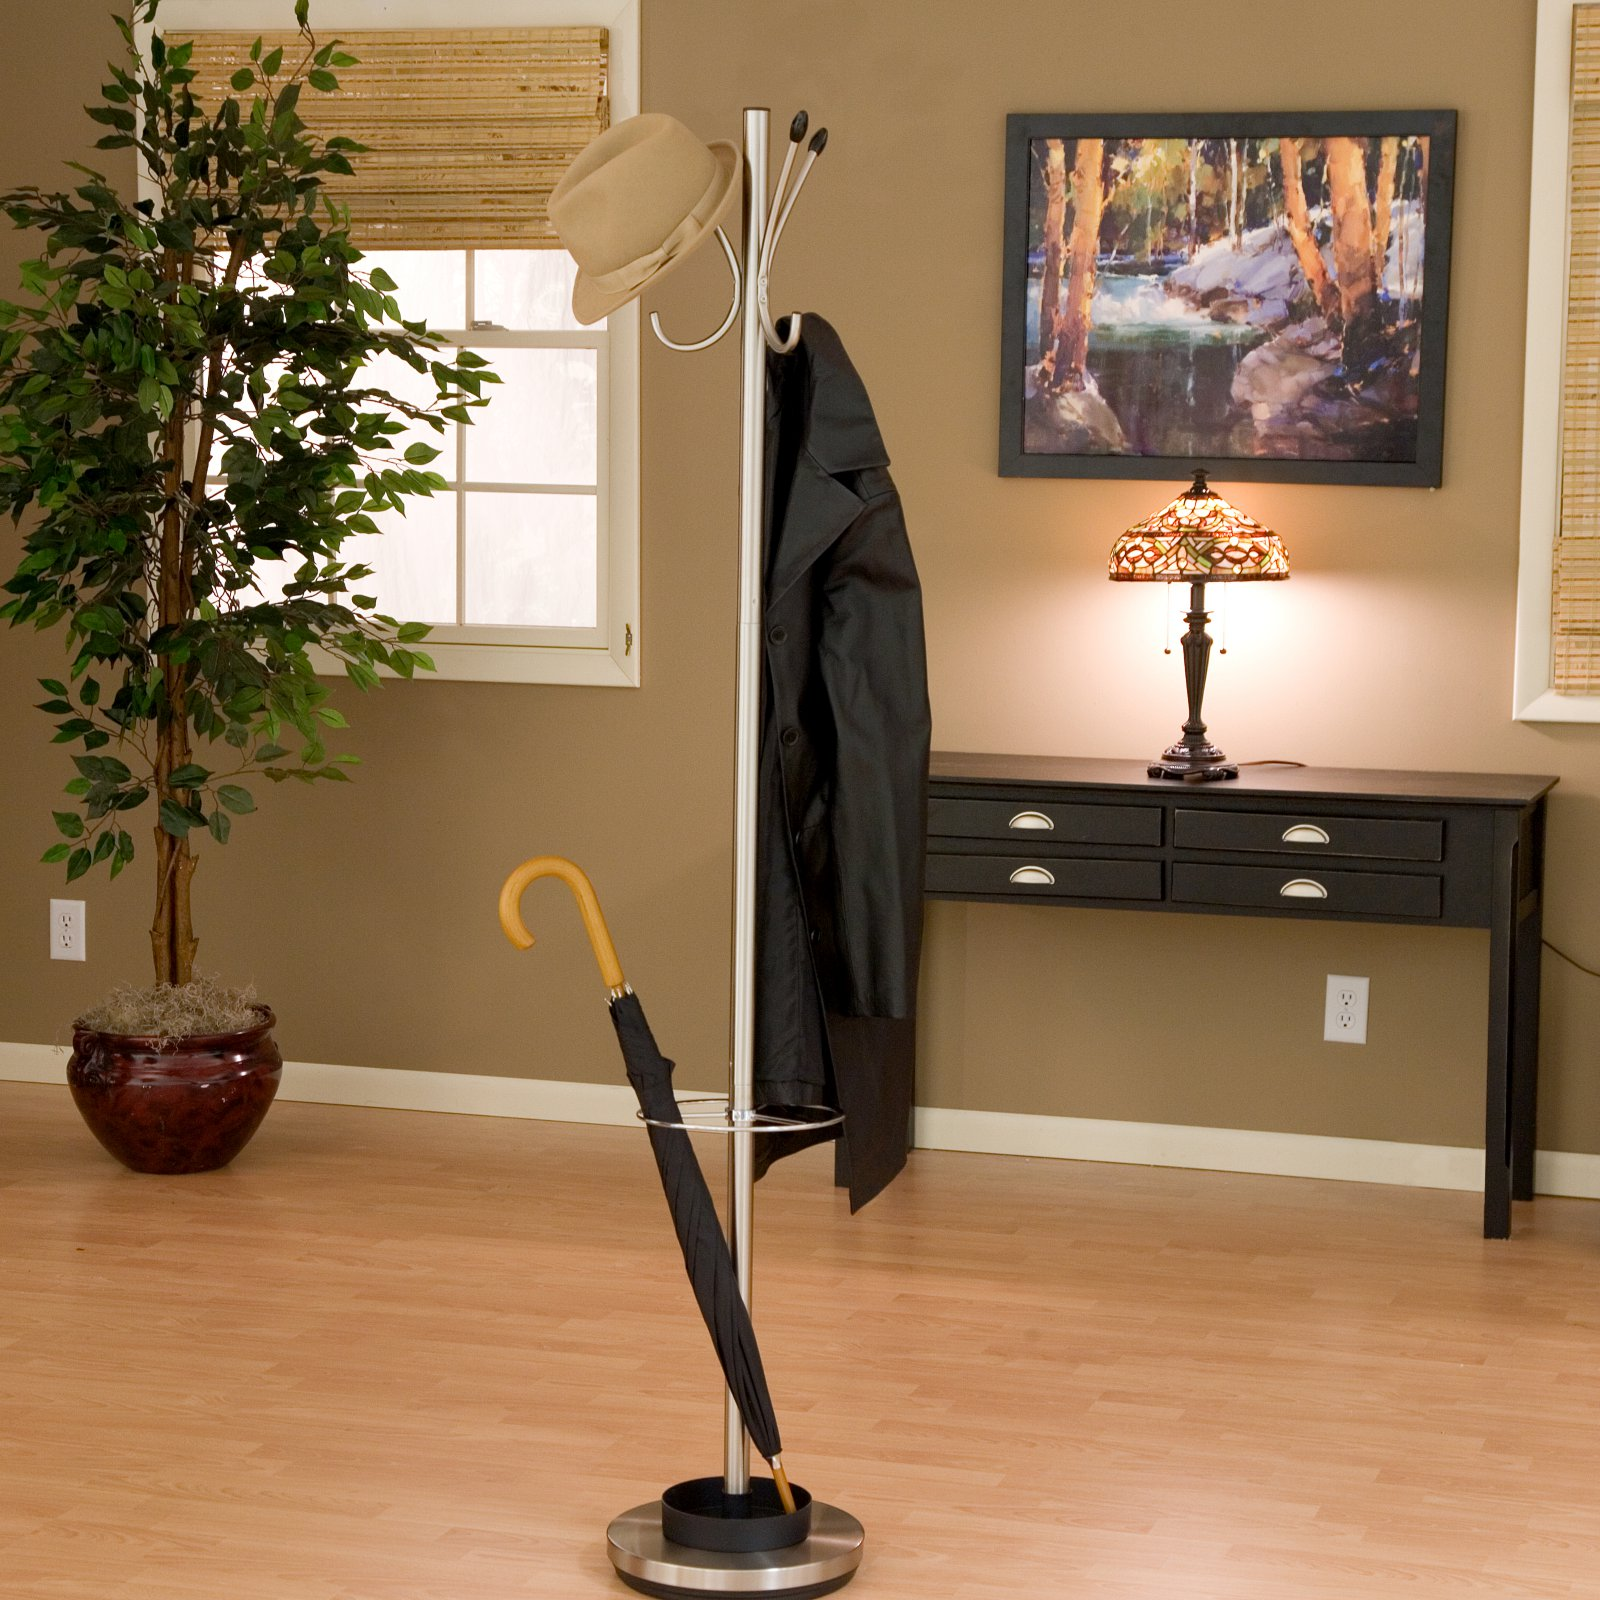 Adesso Jade Metal Standing Coat Rack and Umbrella Stand